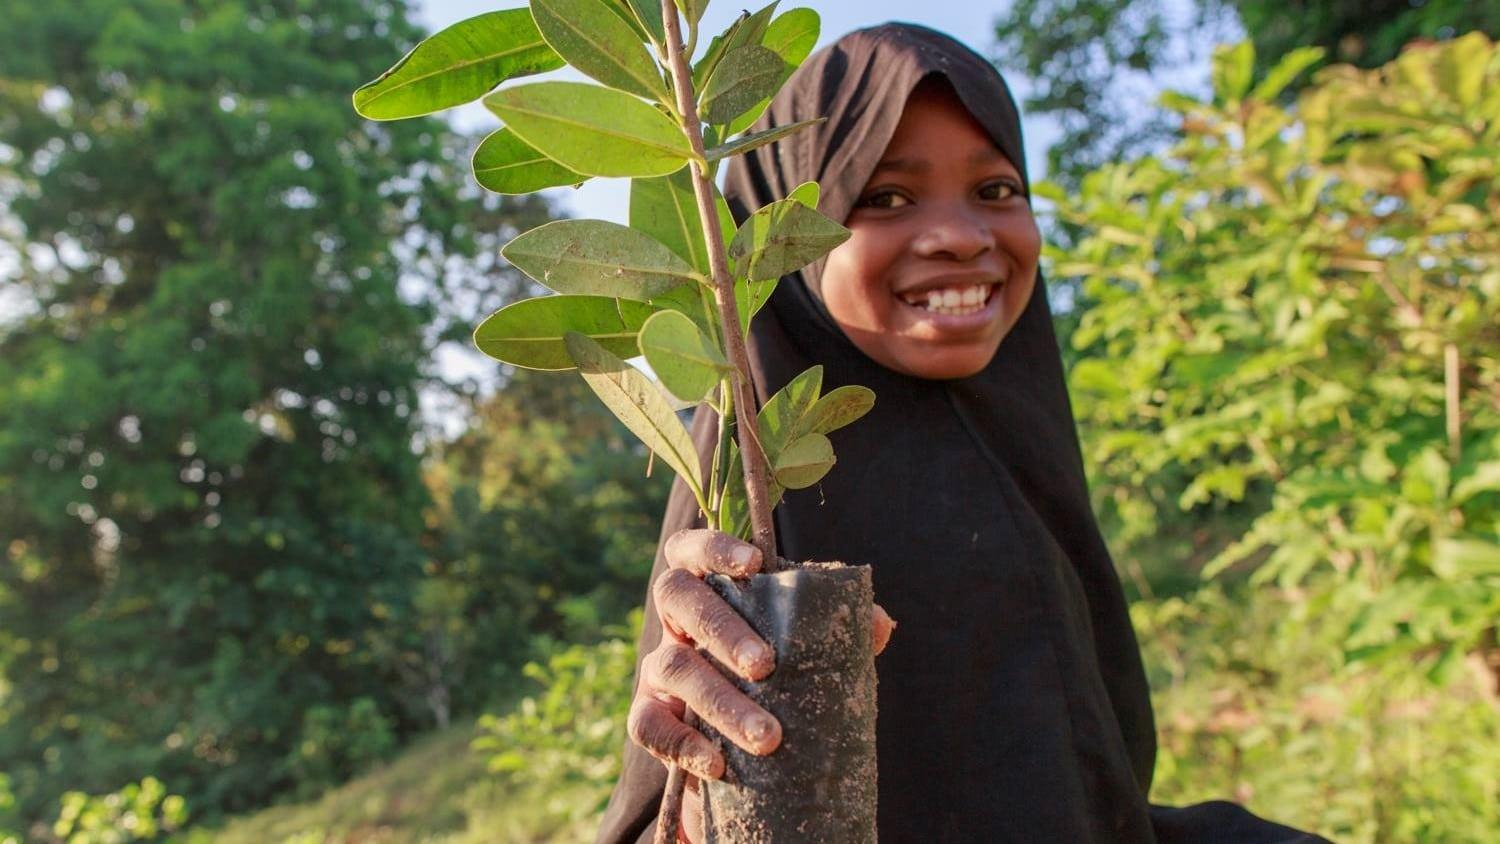 Image: Young girl holding up a sapling tree ready for planting